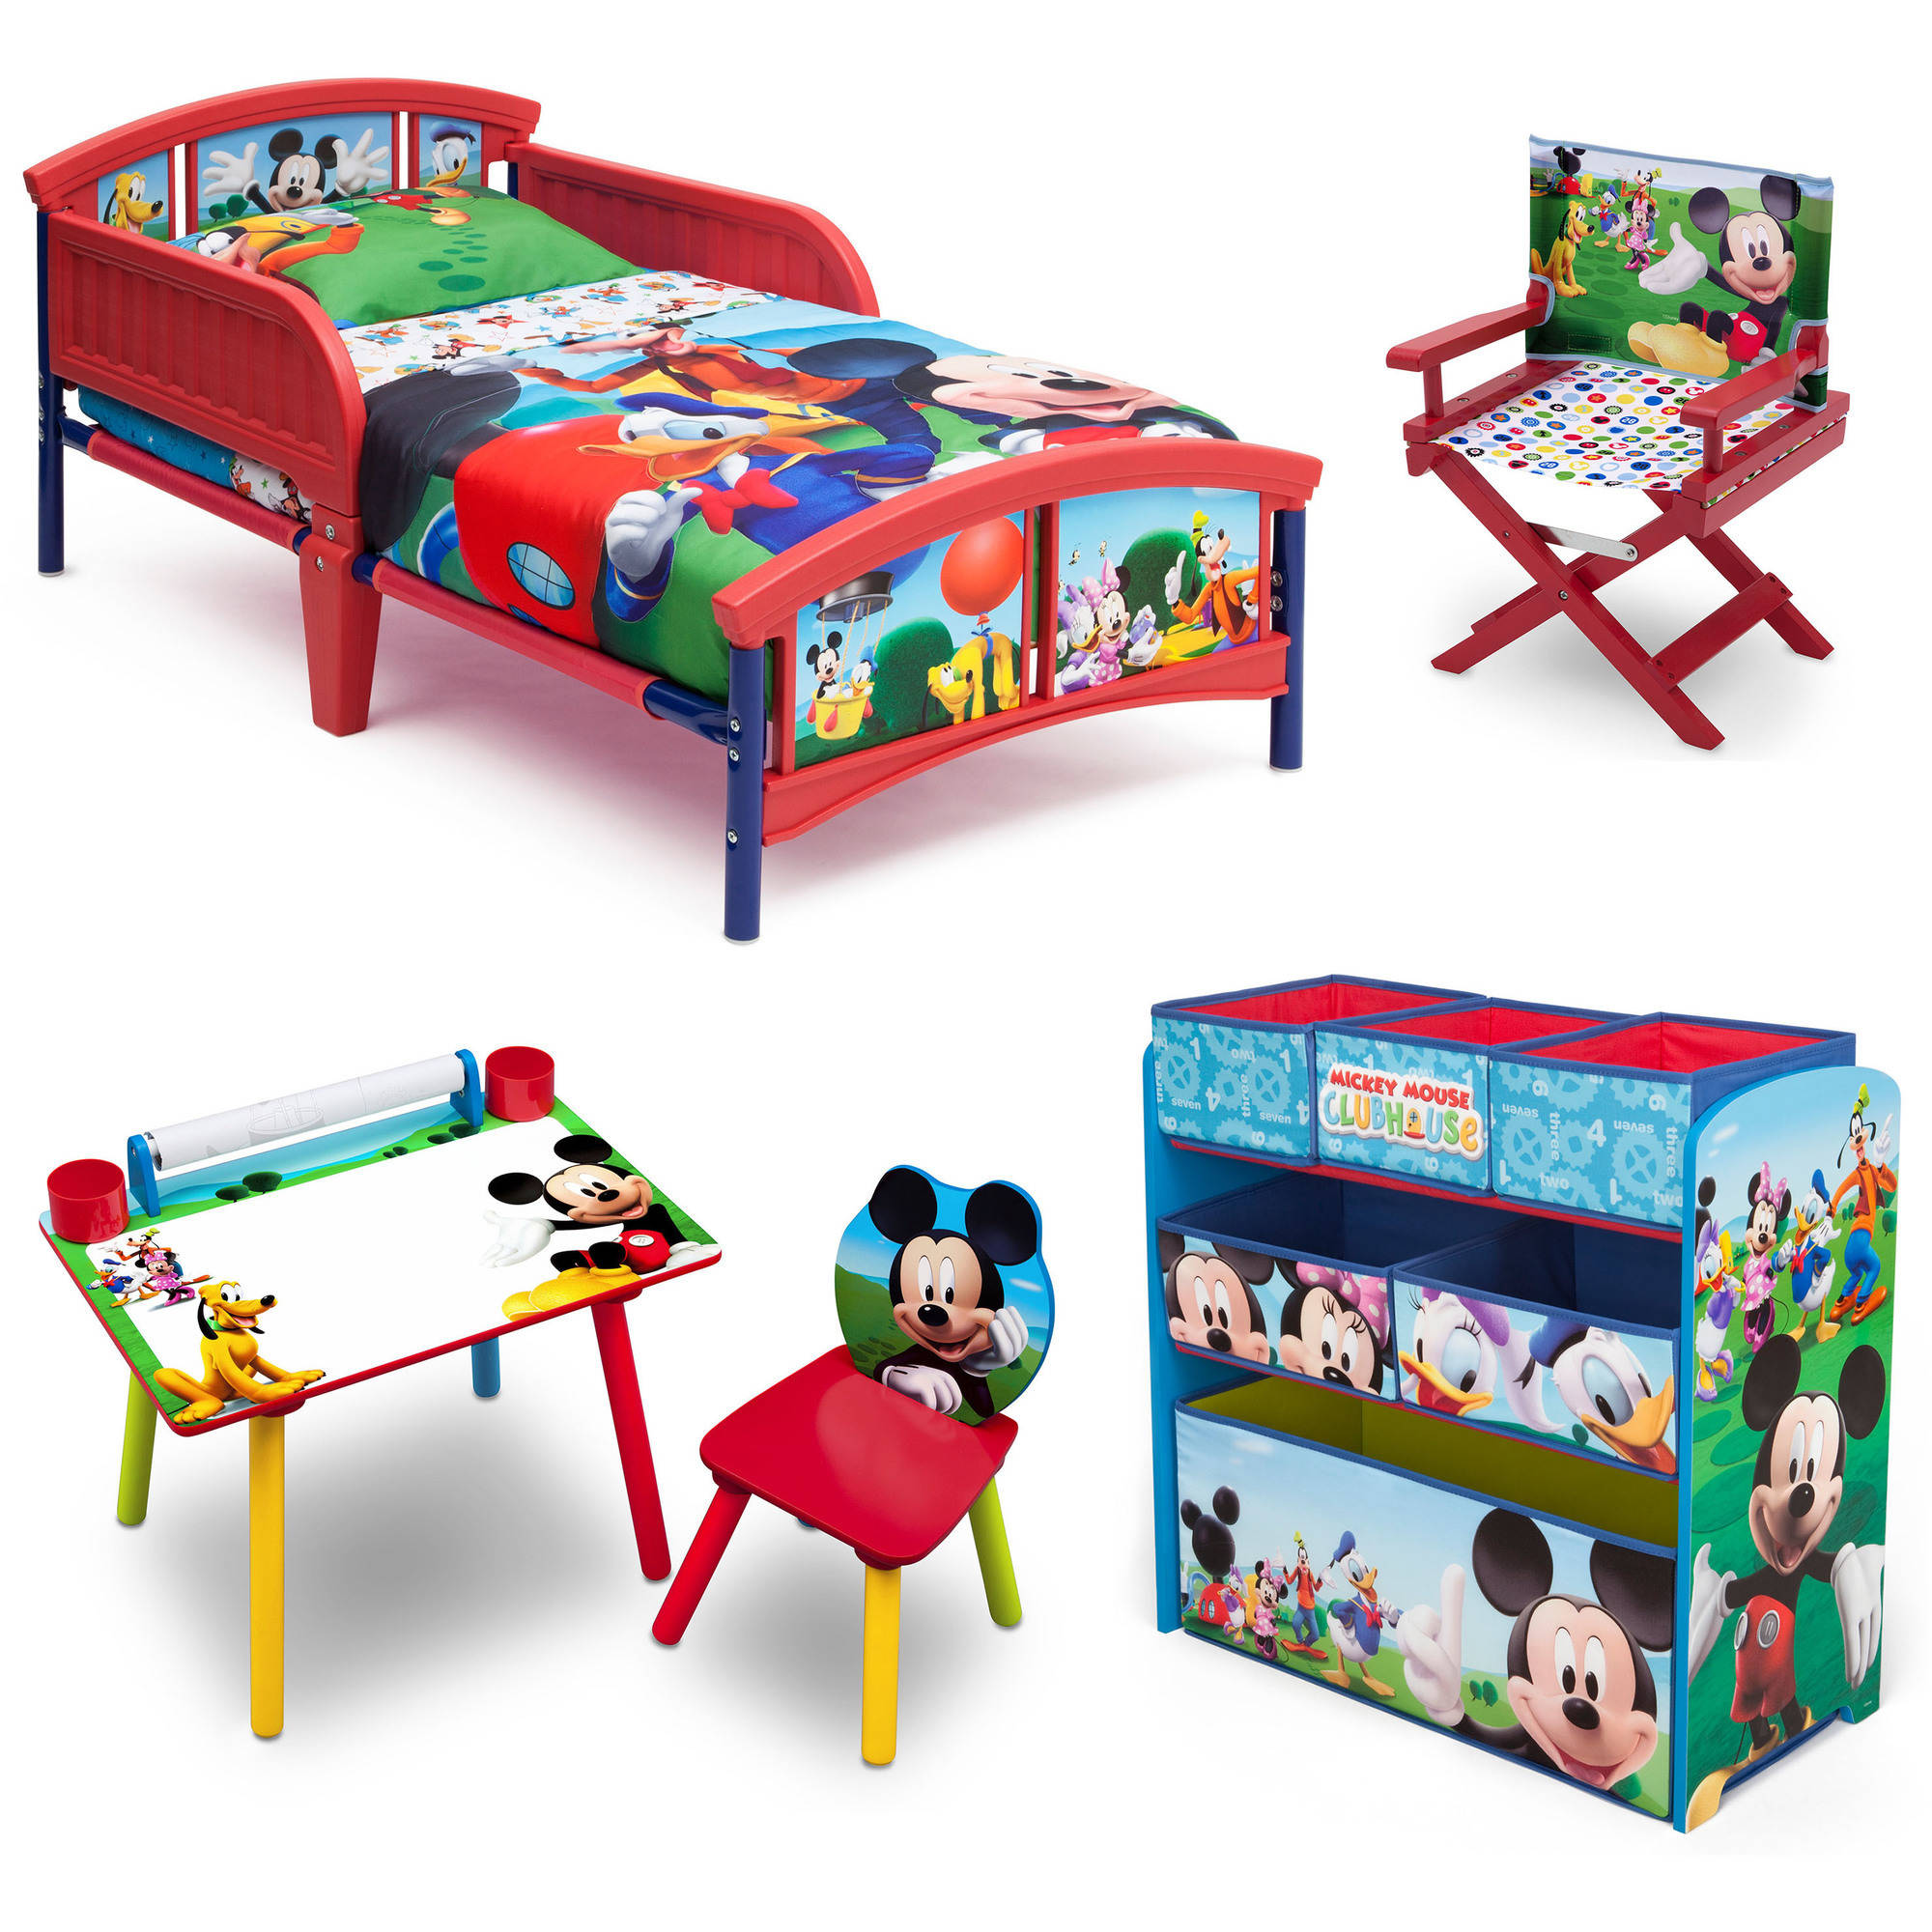 Disney Mickey Mouse Room-in-a-Box with Bonus Chair - Walmart.com